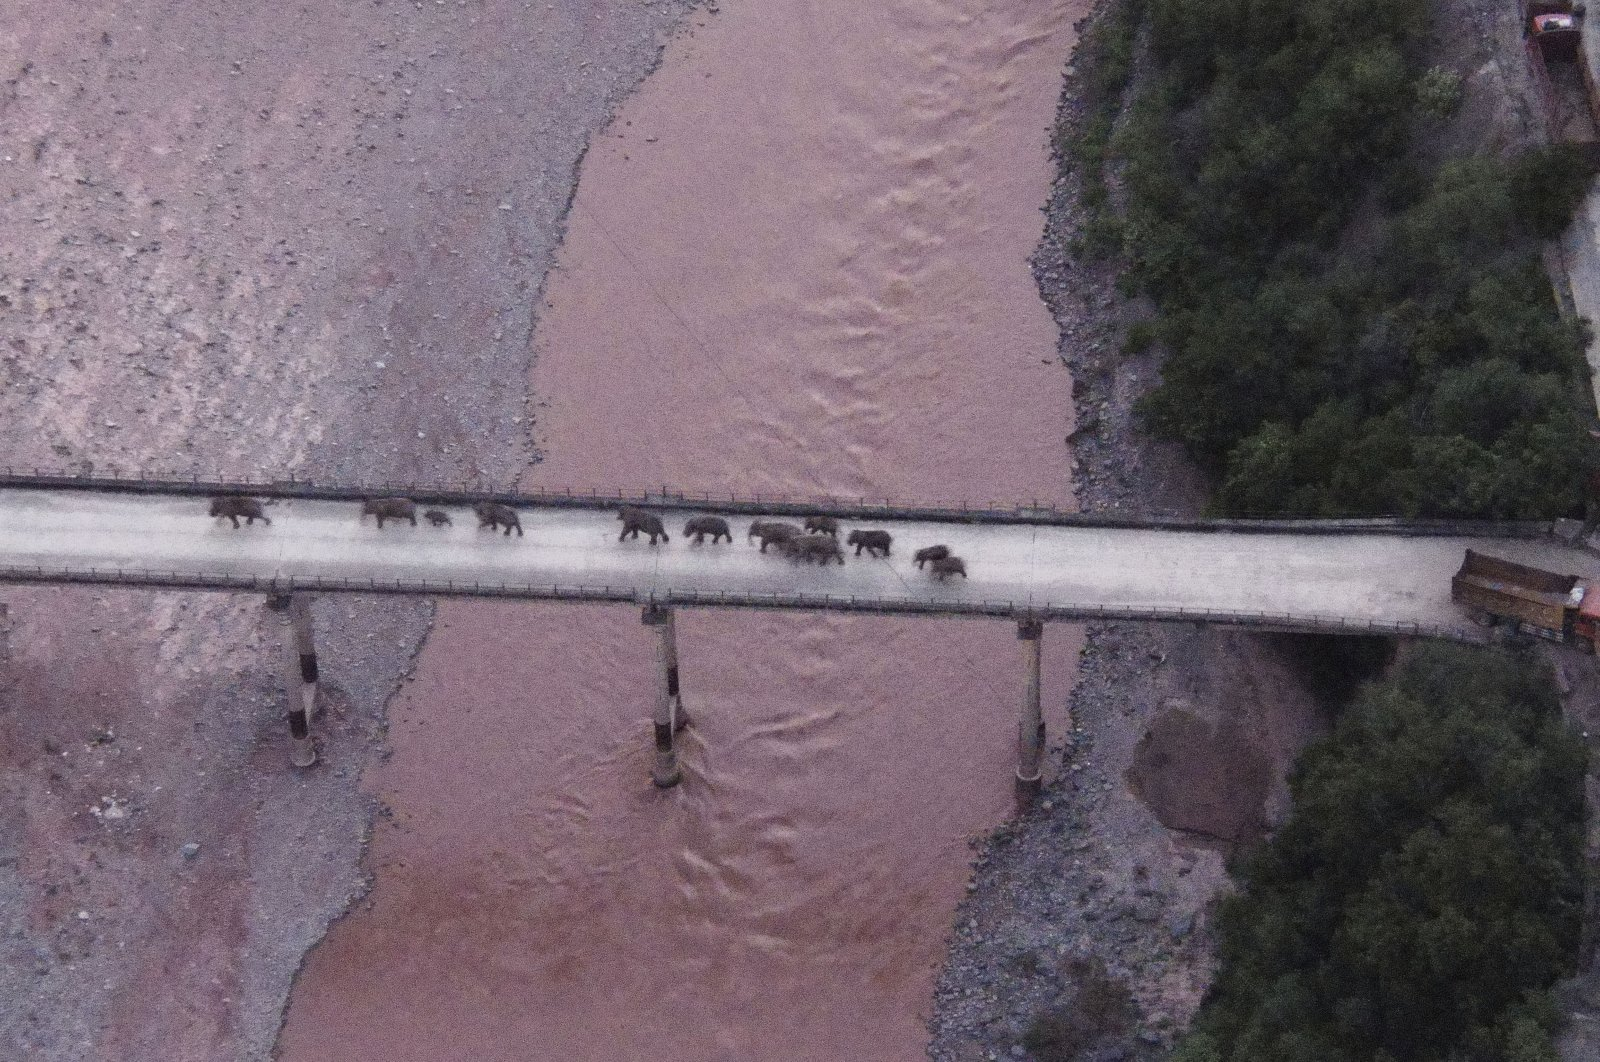 In this photo released by the Yunnan Provincial Command Center for the Safety and Monitoring of North Migrating Asian Elephants, a herd of wandering elephants cross a river using a highway near Yuxi city, Yuanjiang county in southwestern China's Yunnan Province Sunday, Aug. 8, 2021.  (Yunnan Provincial Command Center for the Safety and Monitoring of North Migrating Asian Elephants via AP)